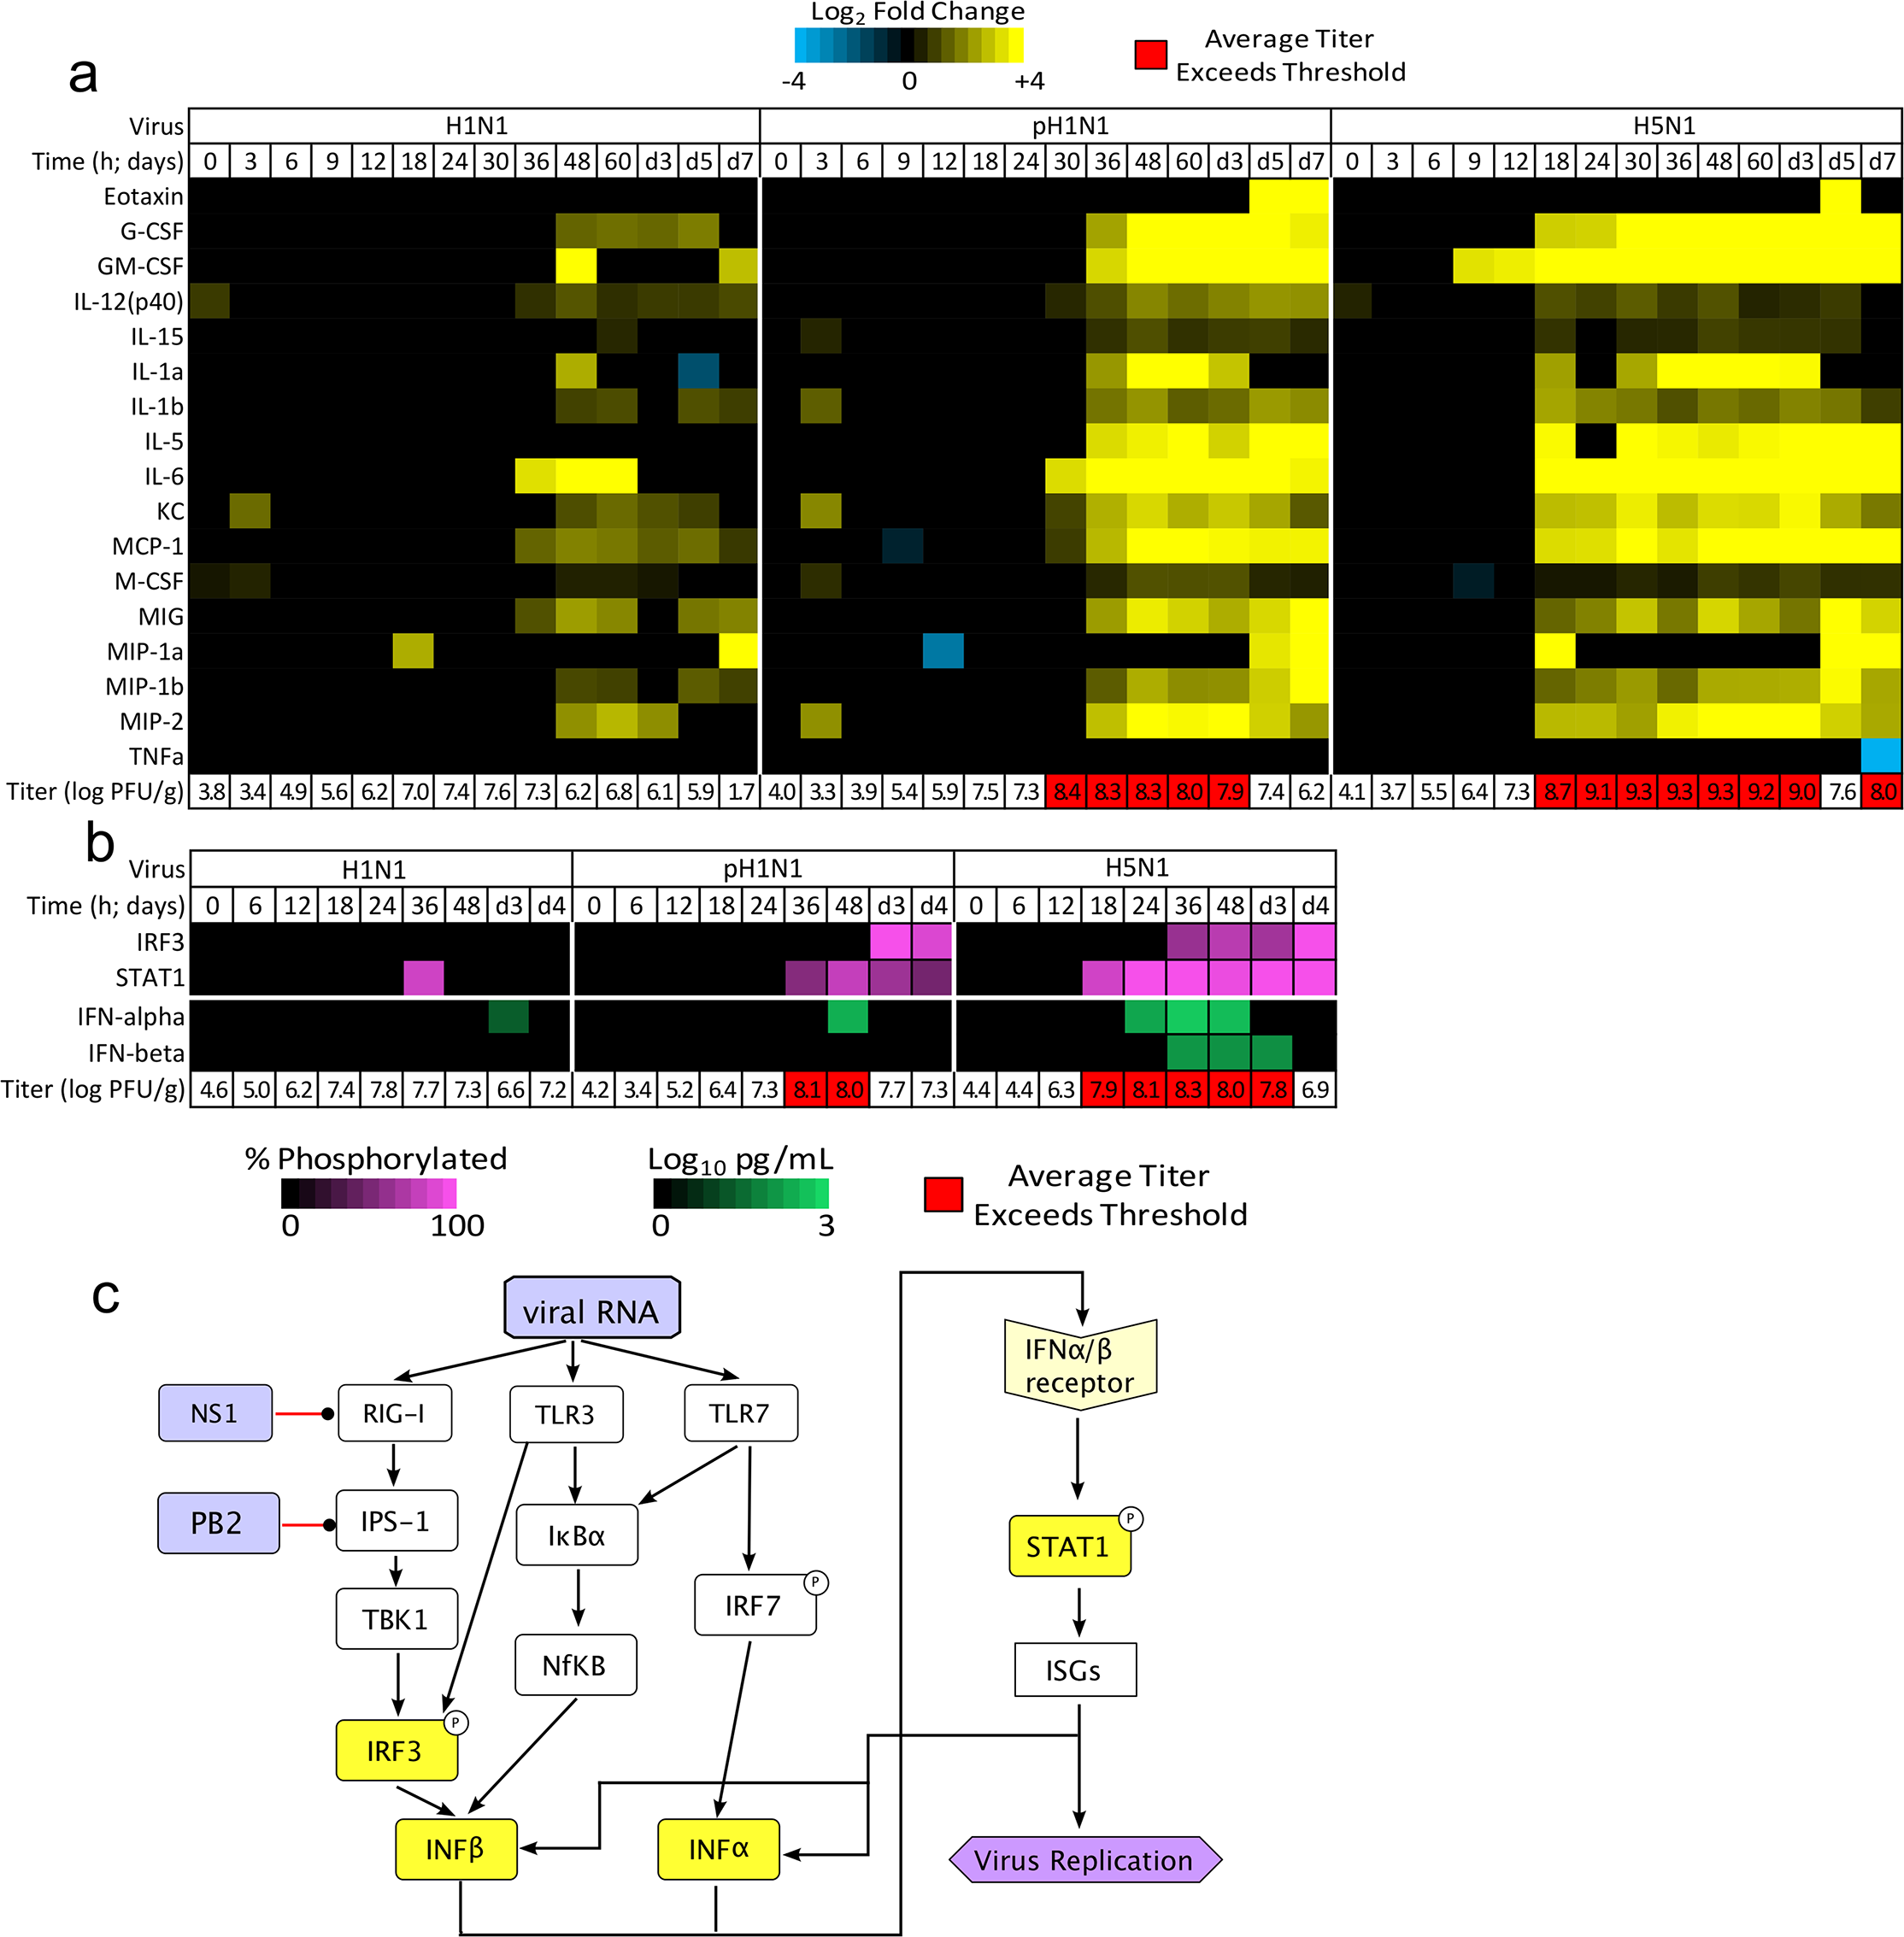 Threshold-like behavior is observed on upstream and downstream components of the IFN signaling pathway.